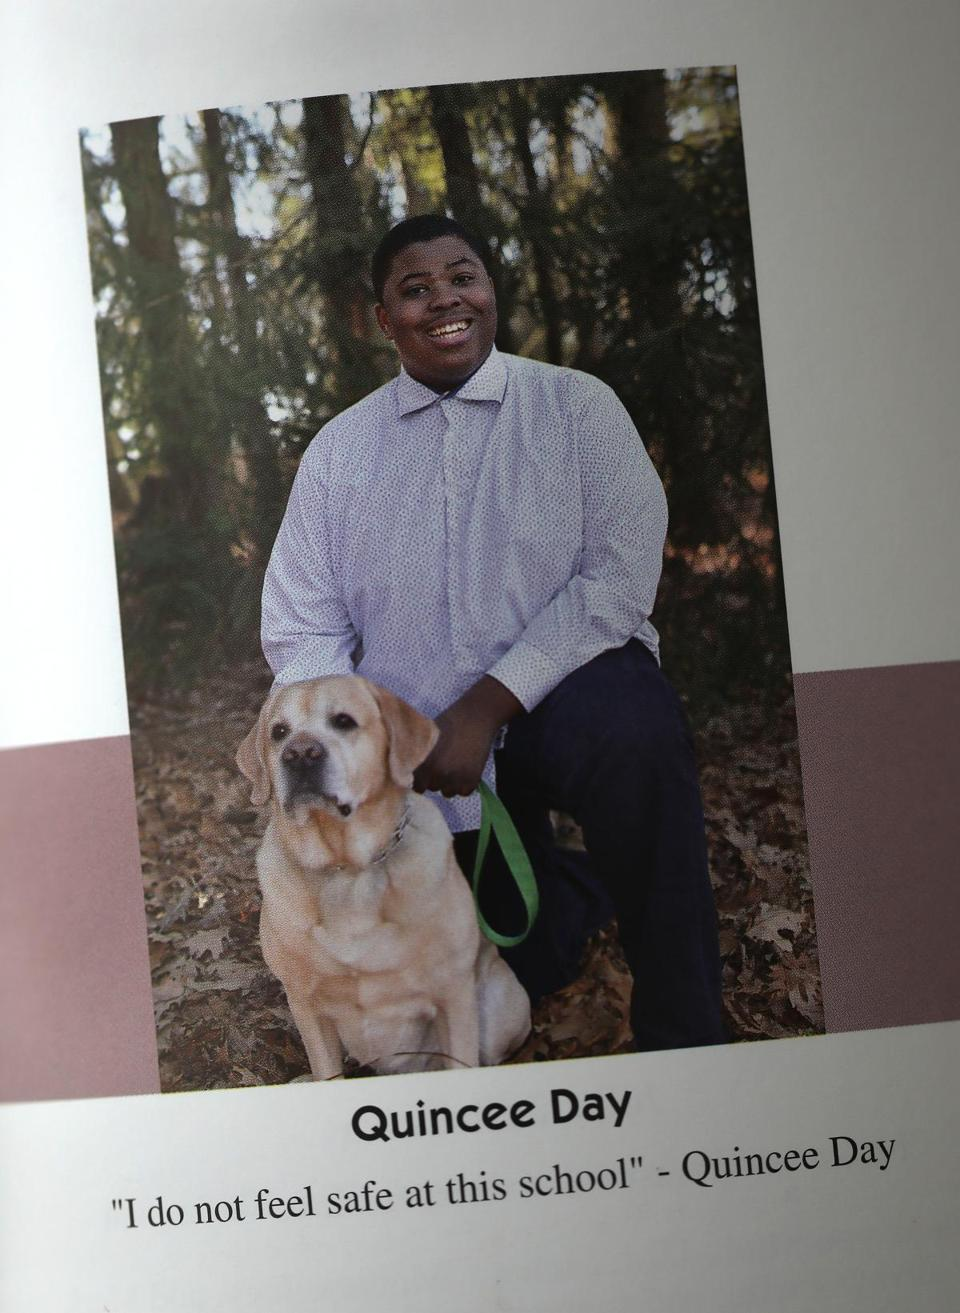 Quincee Day made his feelings of isolation known in his Lincoln-Sudbury Regional High School yearbook.